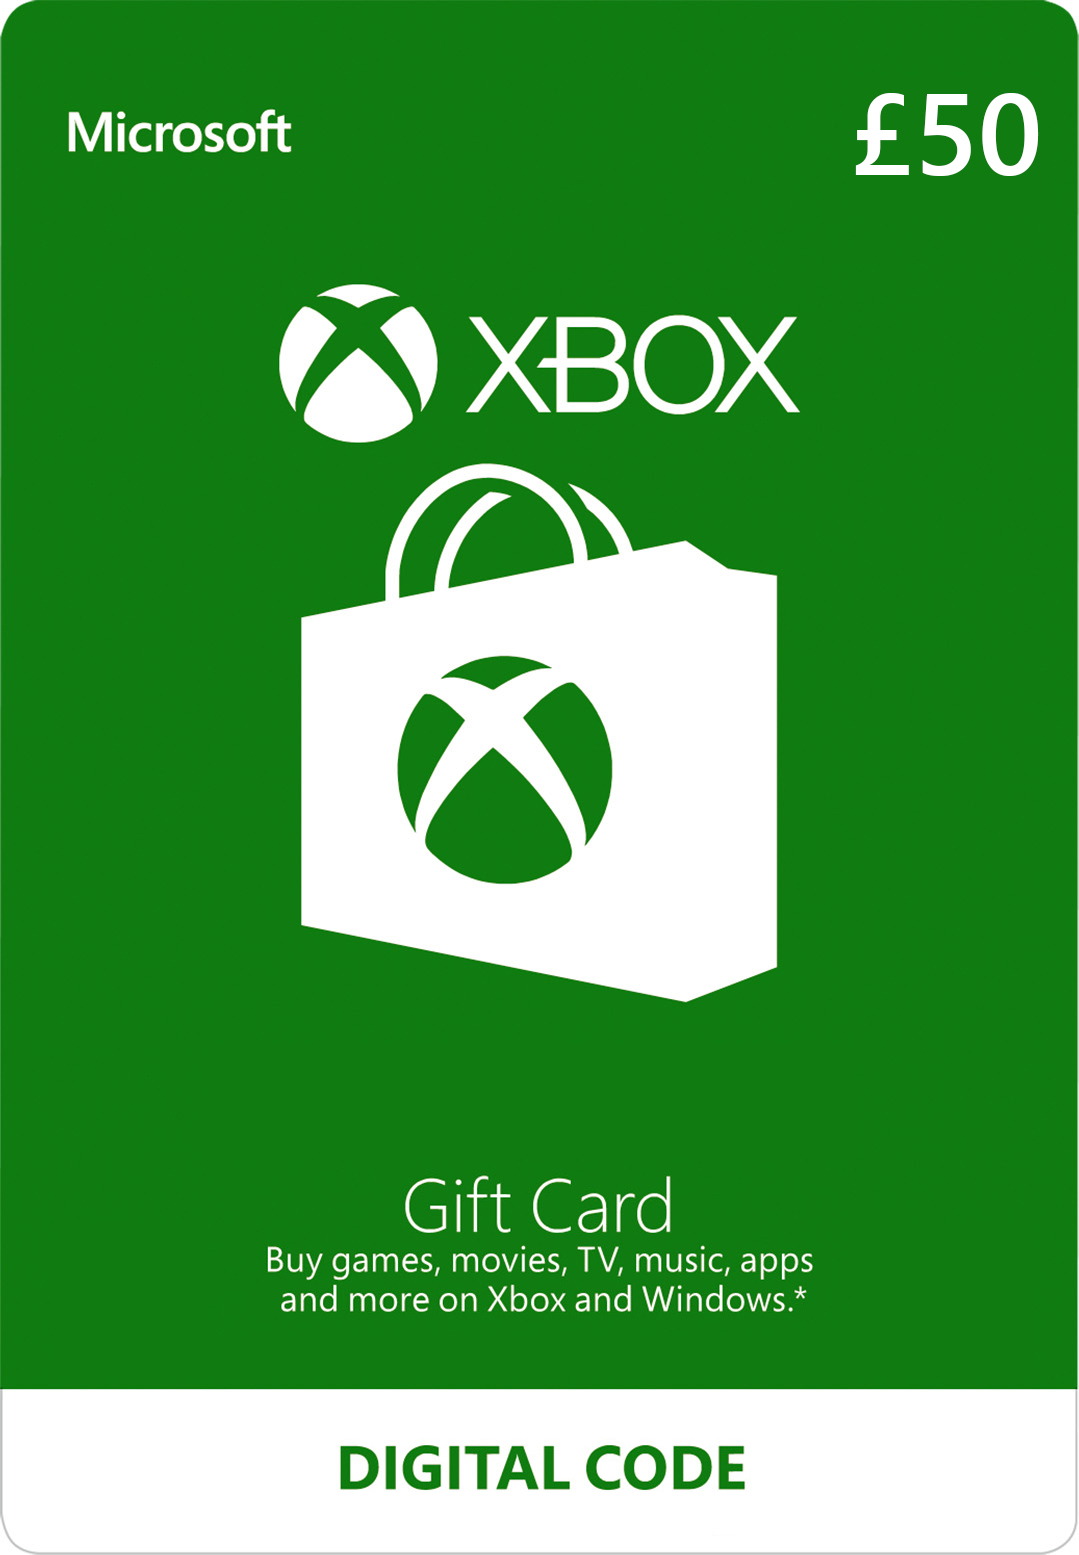 Xbox Digital Gift Card: £50.00